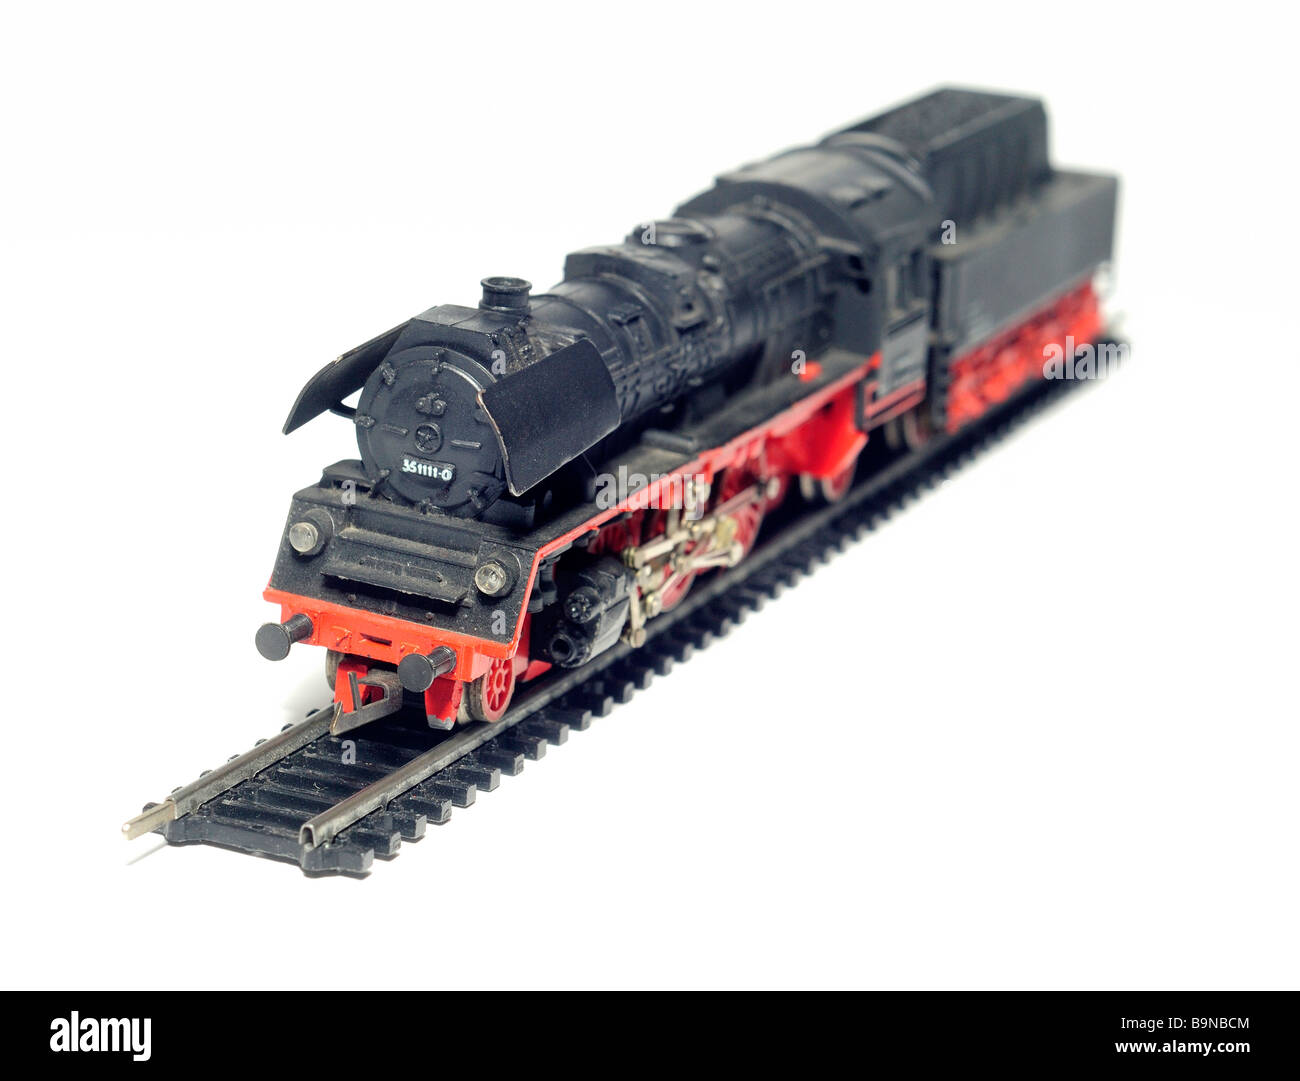 Steam locomotive engine and trains model railway cut out still life detail - Stock Image